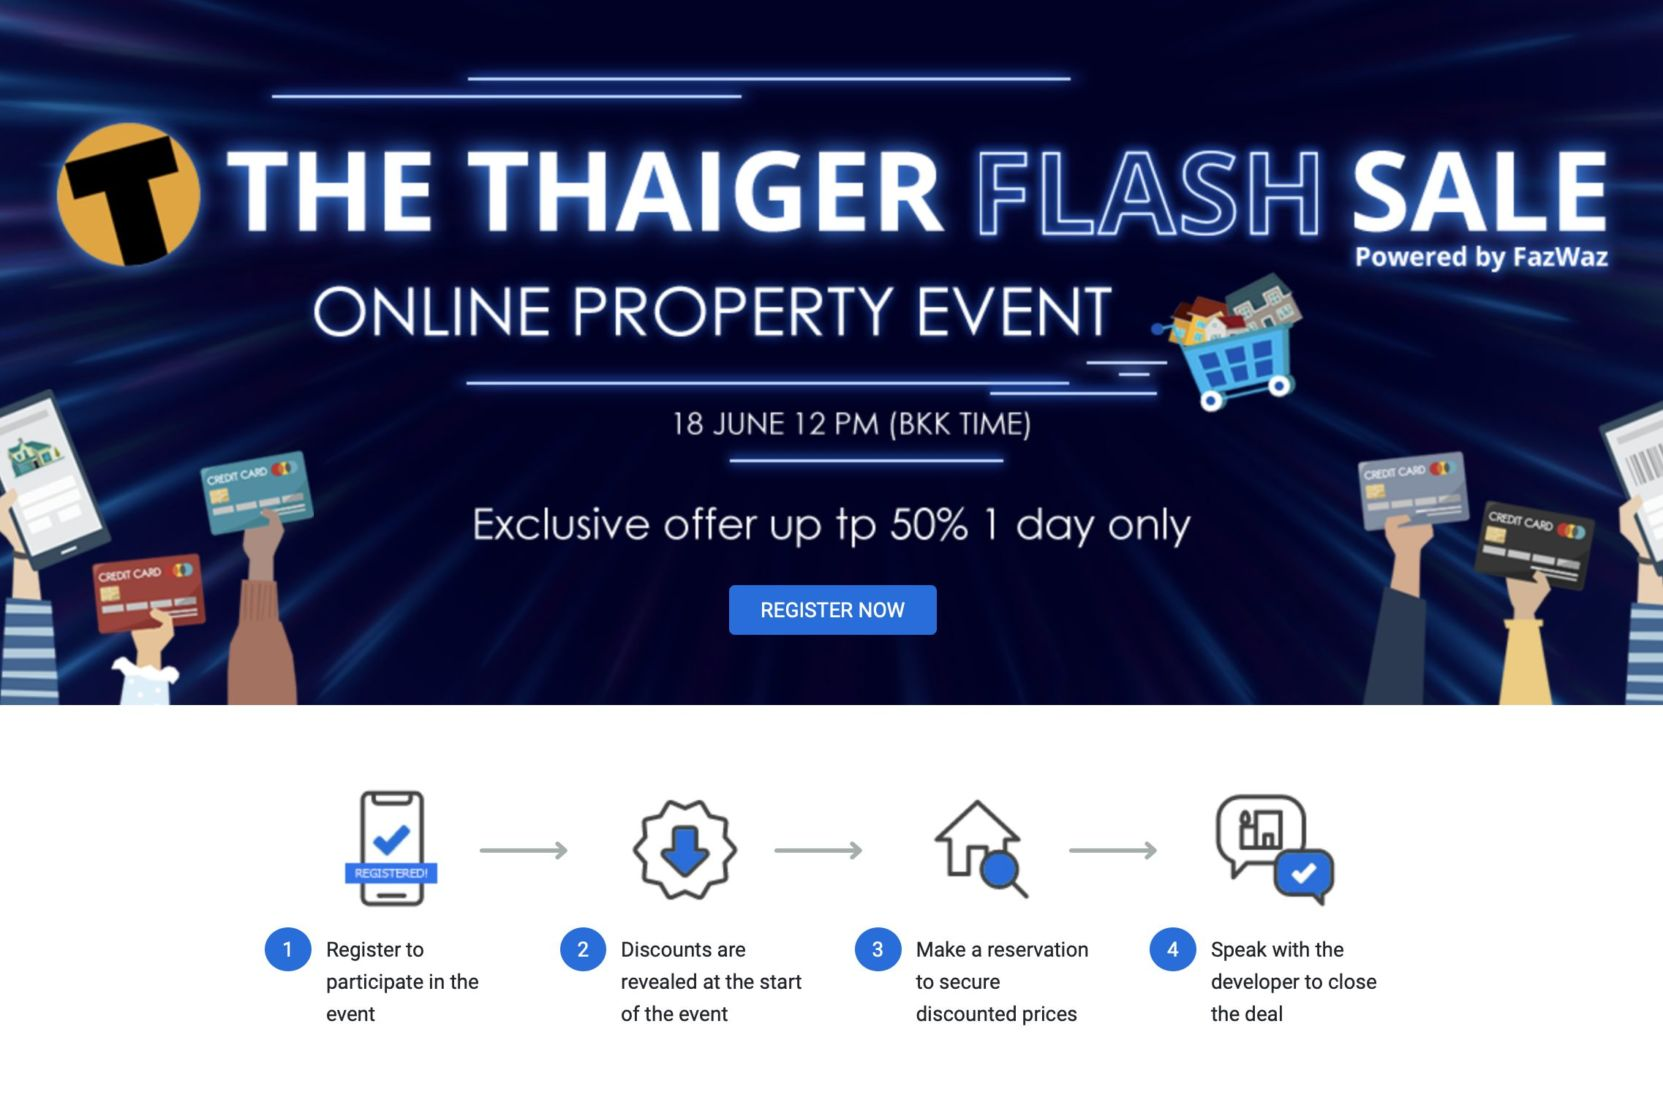 Developers need to clear stock, heavy discounting in property market   News by Thaiger